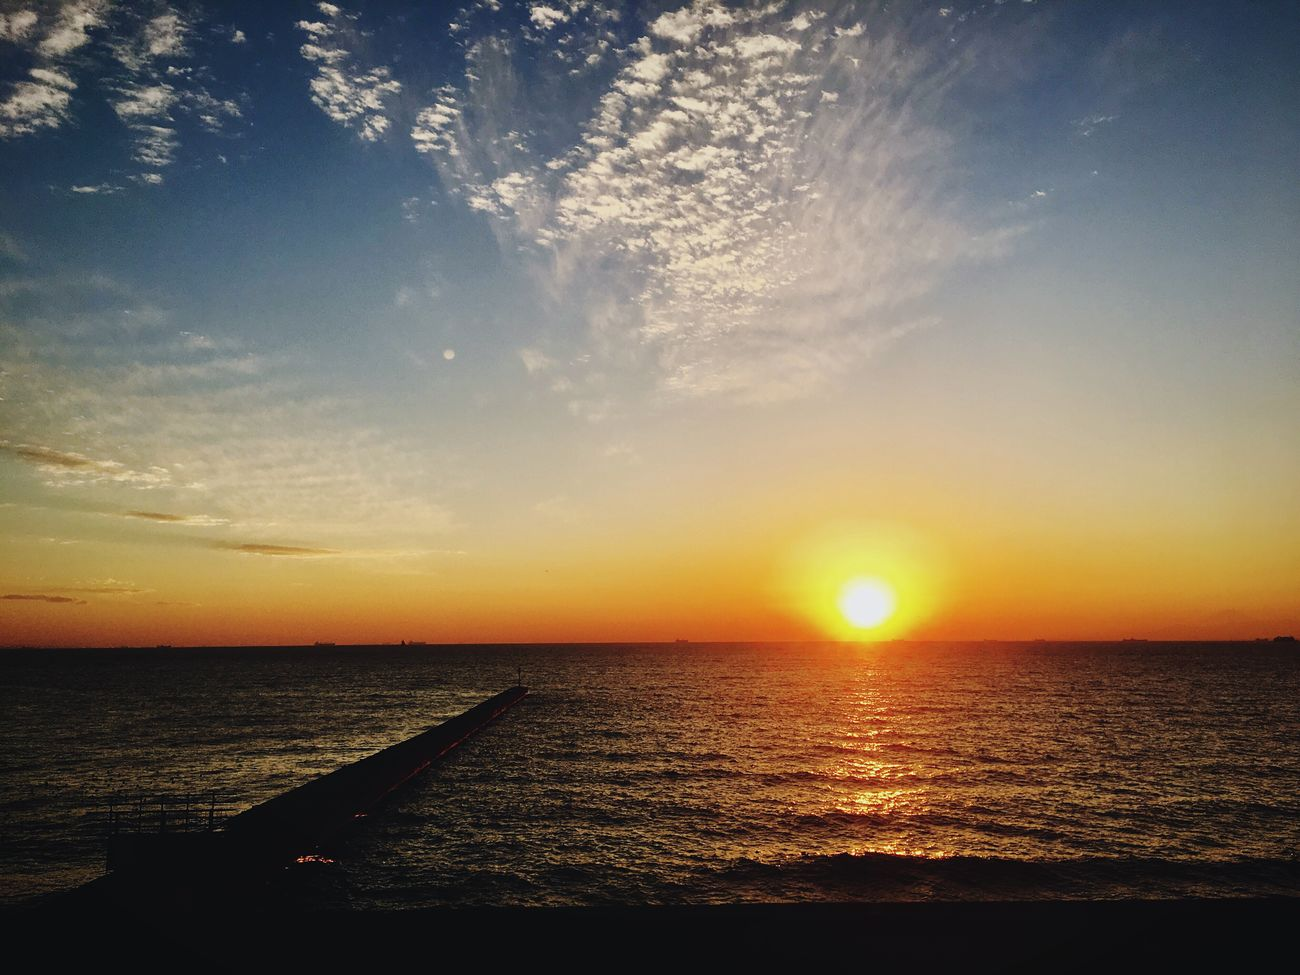 Sunset Water Sea Sun Beauty In Nature Nature Scenics Sky Horizon Over Water Sunlight Orange Color Tranquility Outdoors Tokyo Chiba Japan Tokyo Bay Ocean View